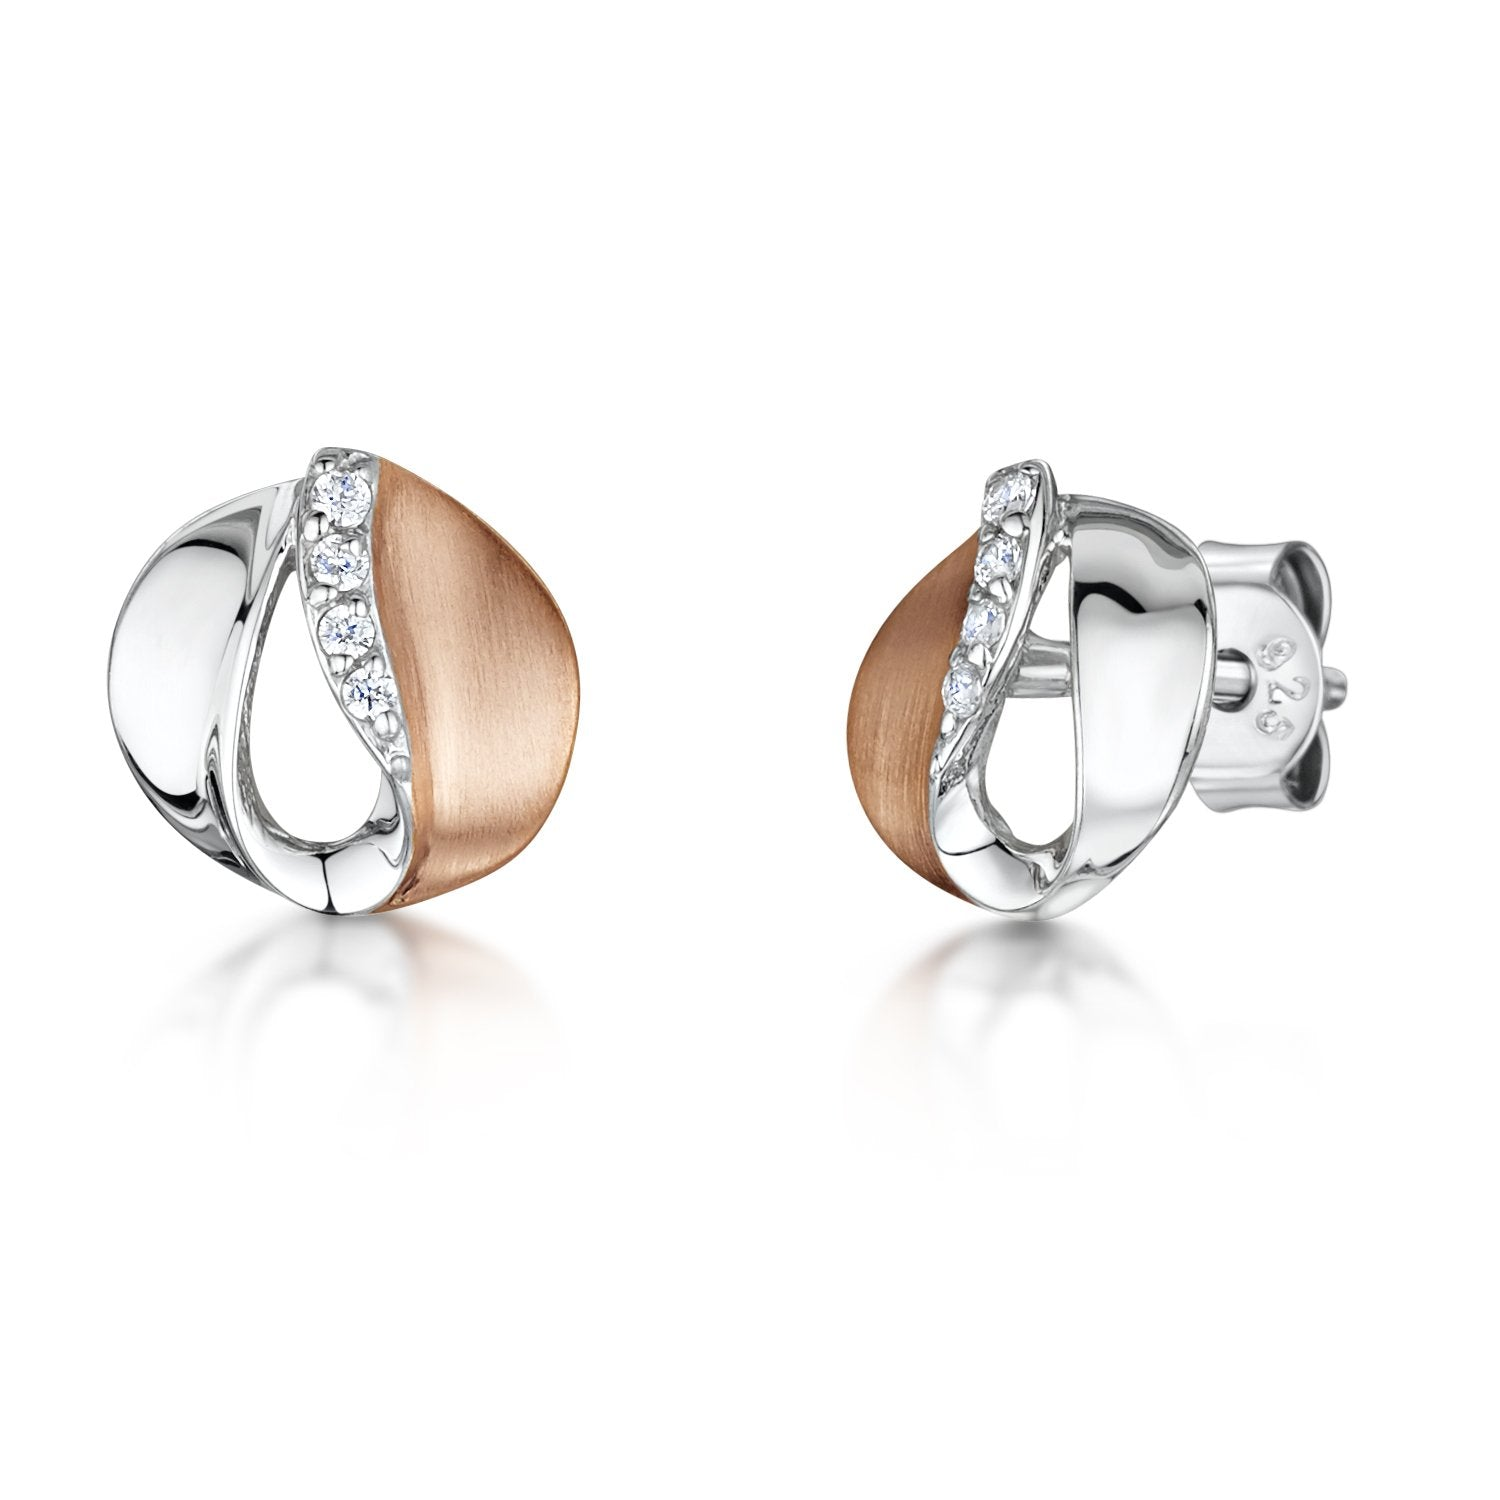 Sterling Silver And Satin Finished  Rose Gold Stud Earrings Set With A Line of Cubic Zirconia Stones - JOOLS By Jenny Brown